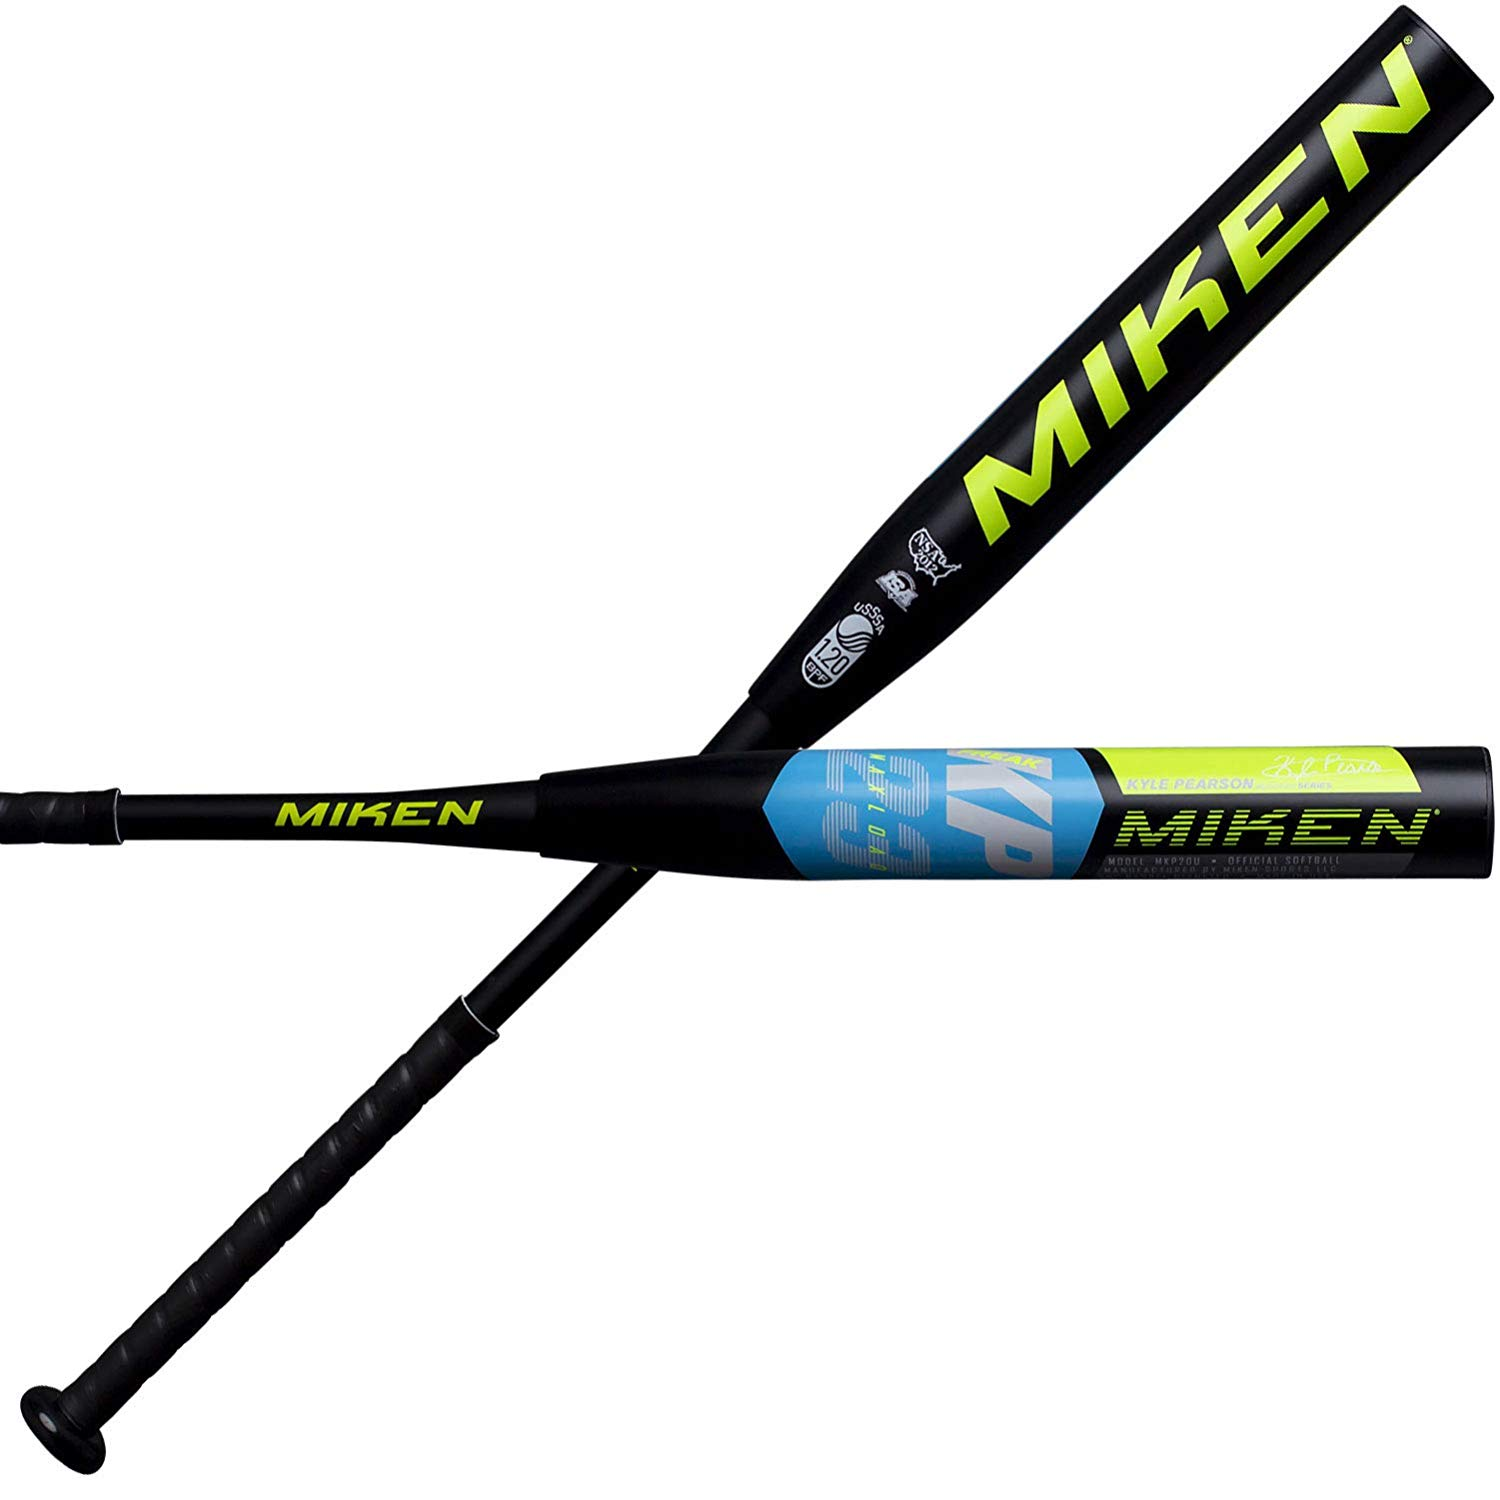 miken-2020-kyle-pearson-freak-23-maxload-usssa-slow-pitch-softball-bat-34-inch-26-oz MKP20U-3-26 Miken 658925042898 DESIGNED FOR ADULTS PLAYING RECREATIONAL AND COMPETITIVE SLOWPITCH SOFTBALL this Miken